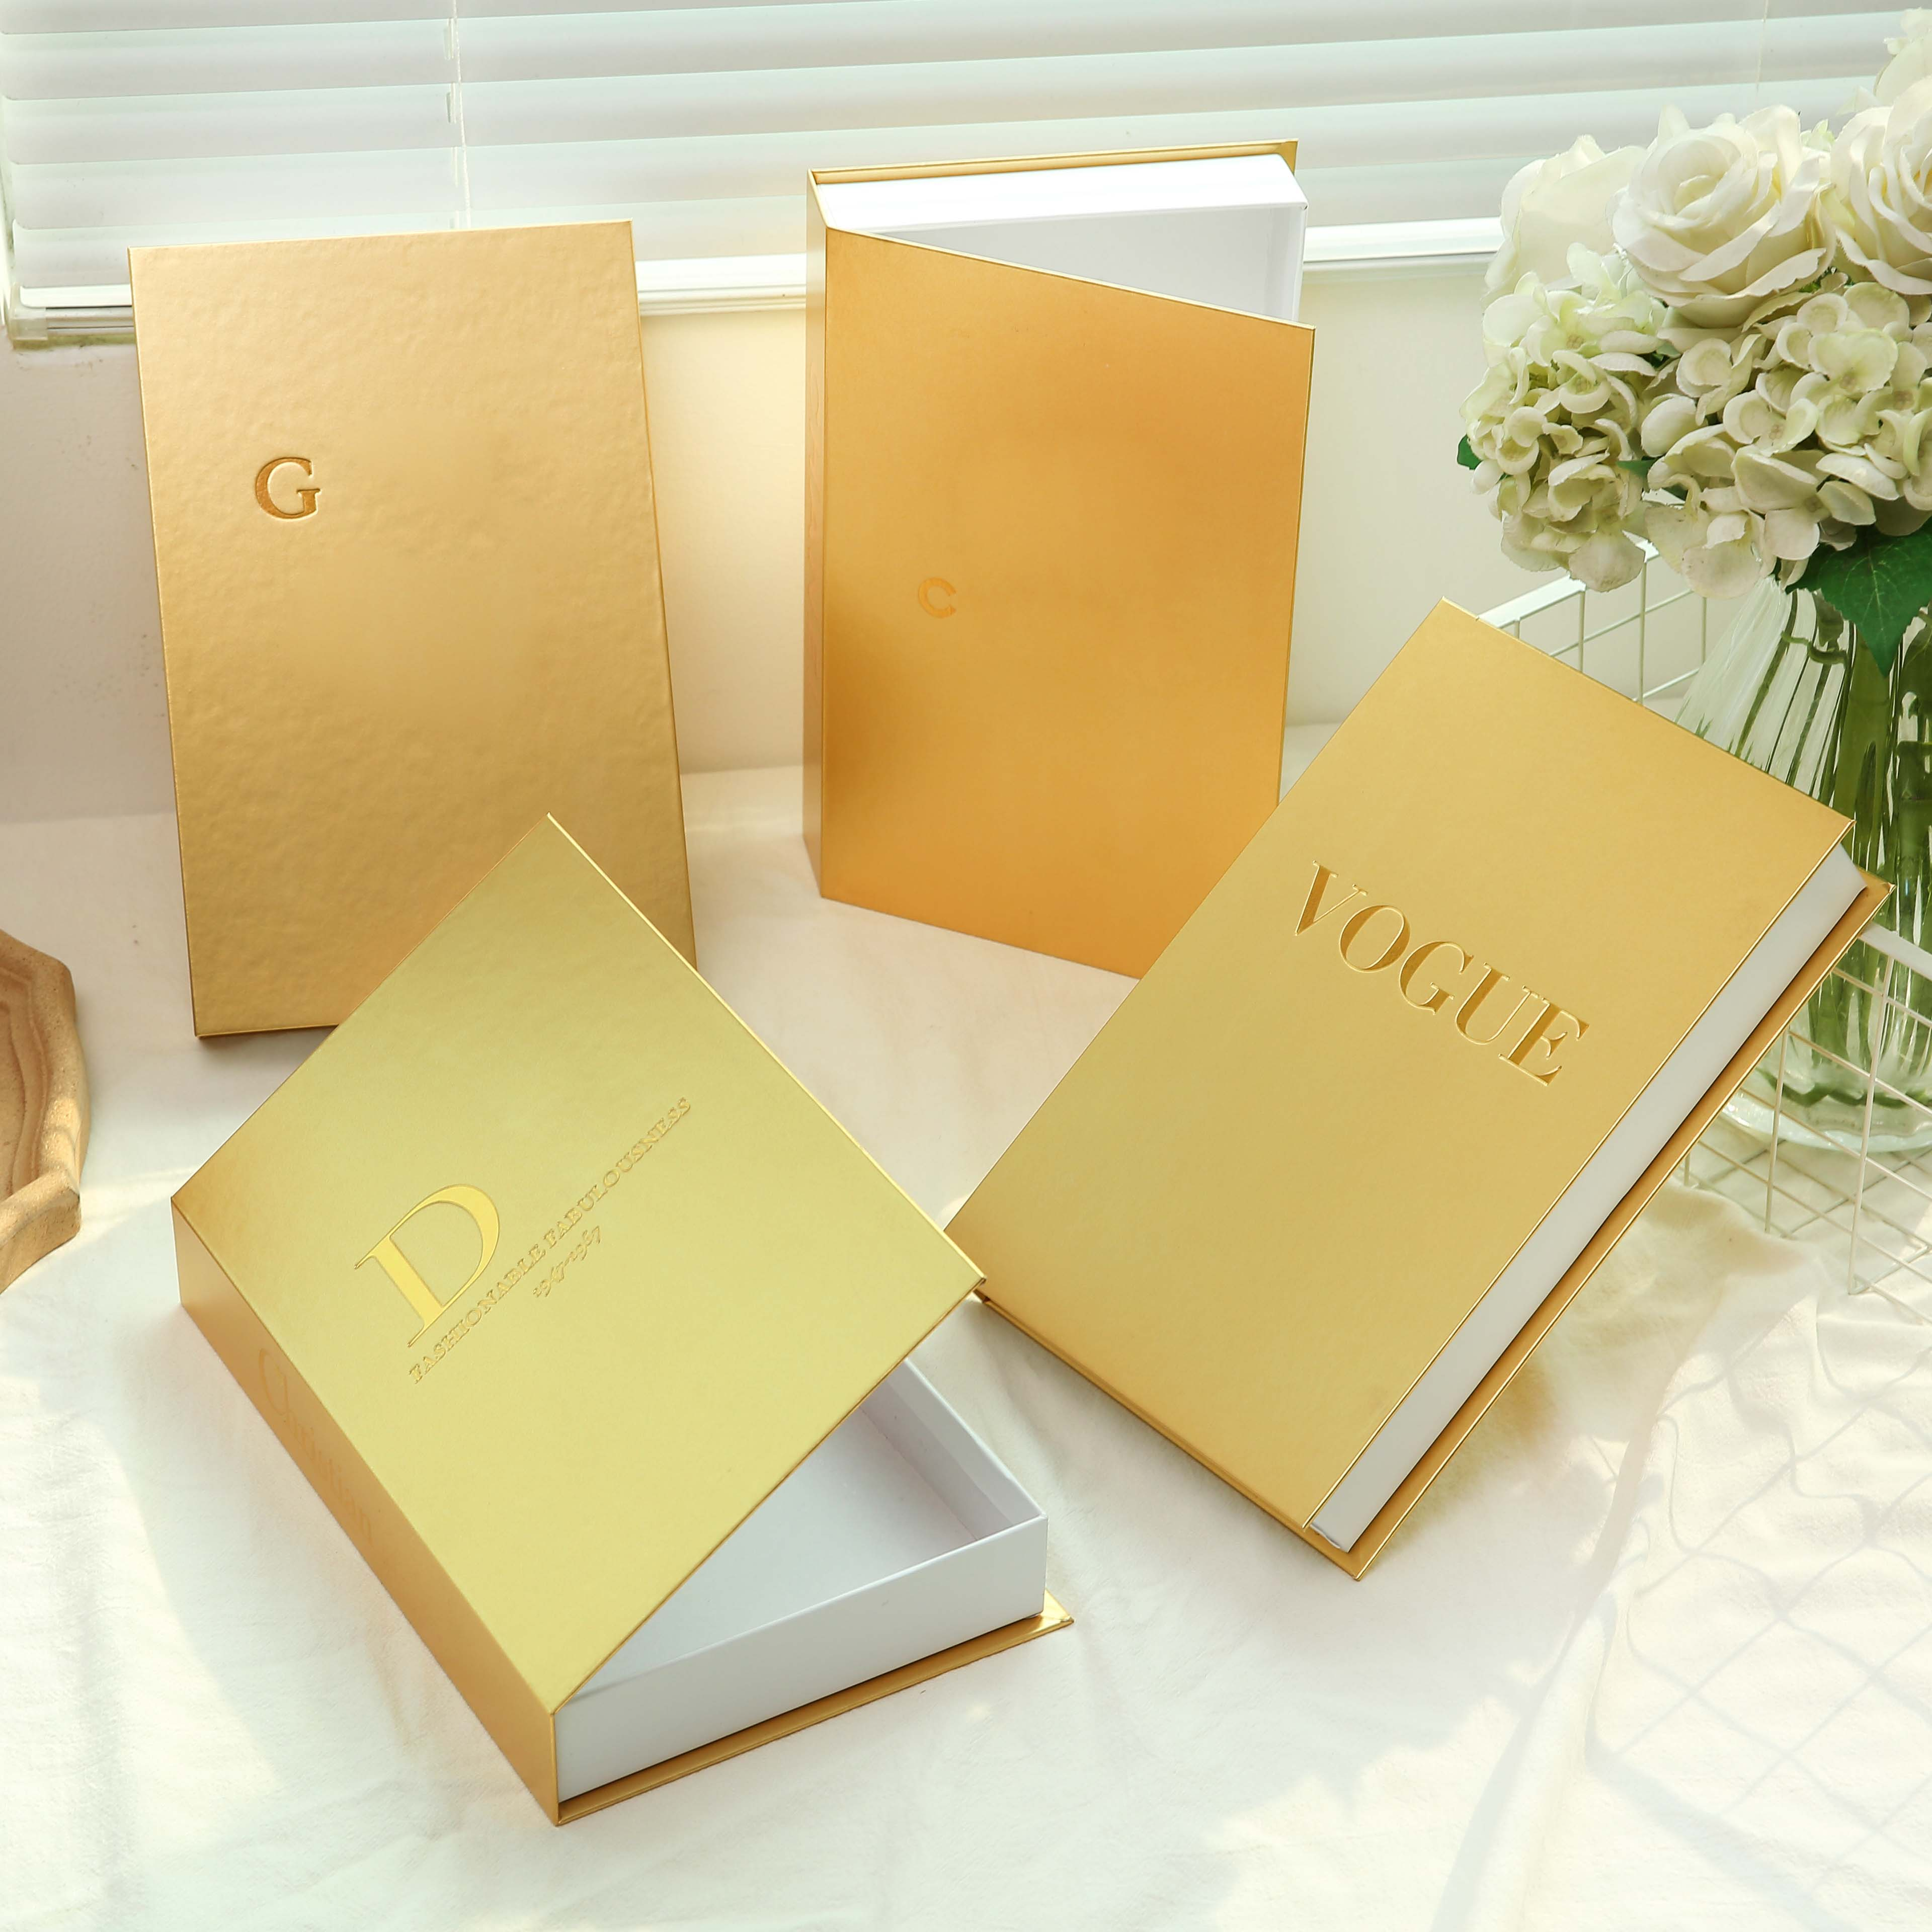 Fake Books Openable Home Decoration Book Box Stylish and Beautiful Desktop Decoration Can Be Customized Storage Home Accessories